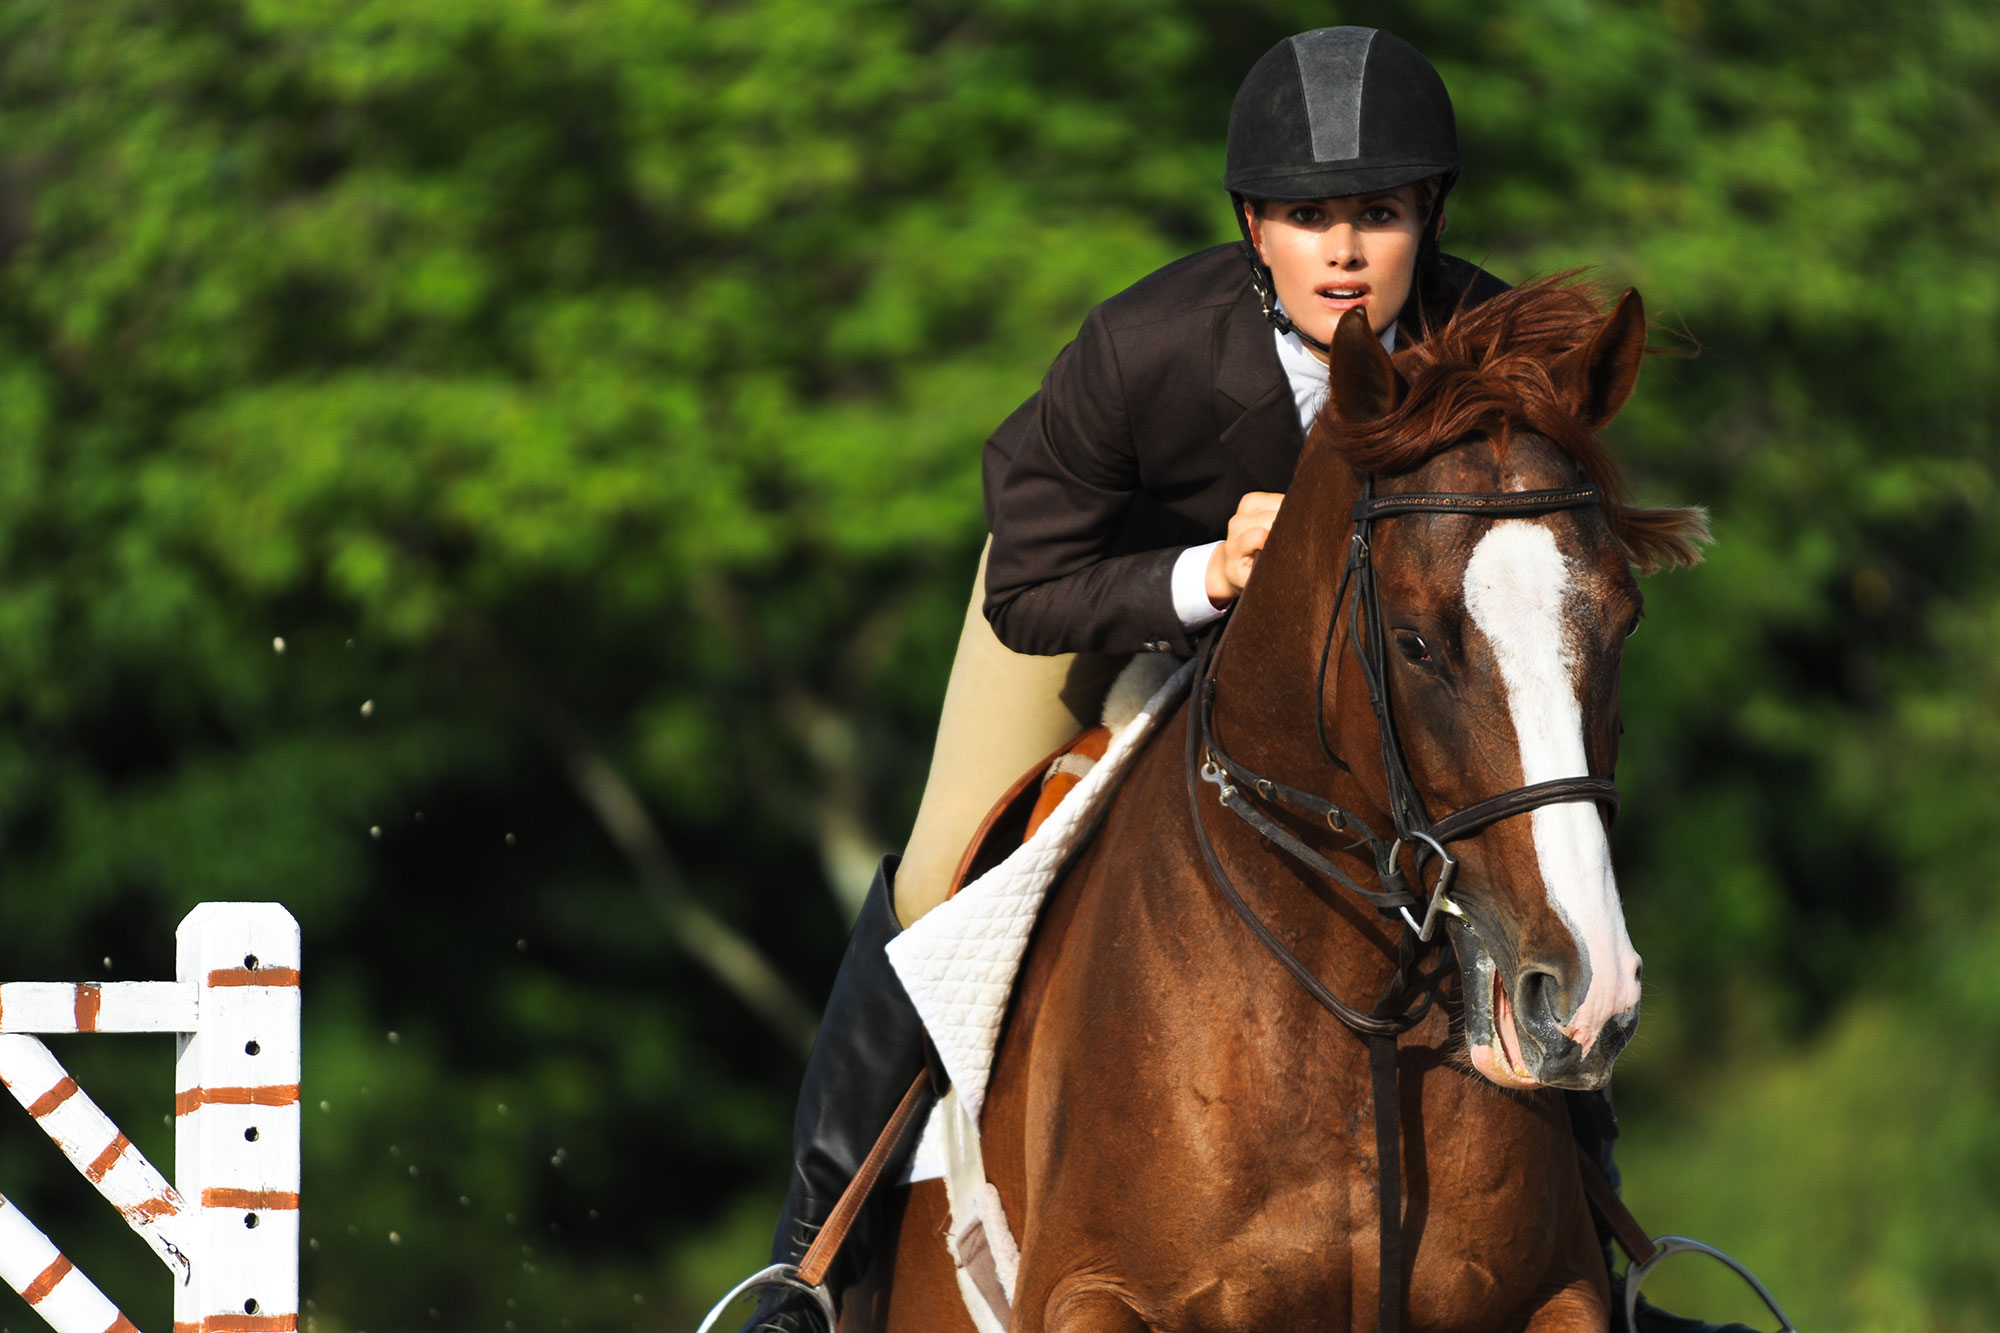 american-rv-hire-equestrian-events.jpg